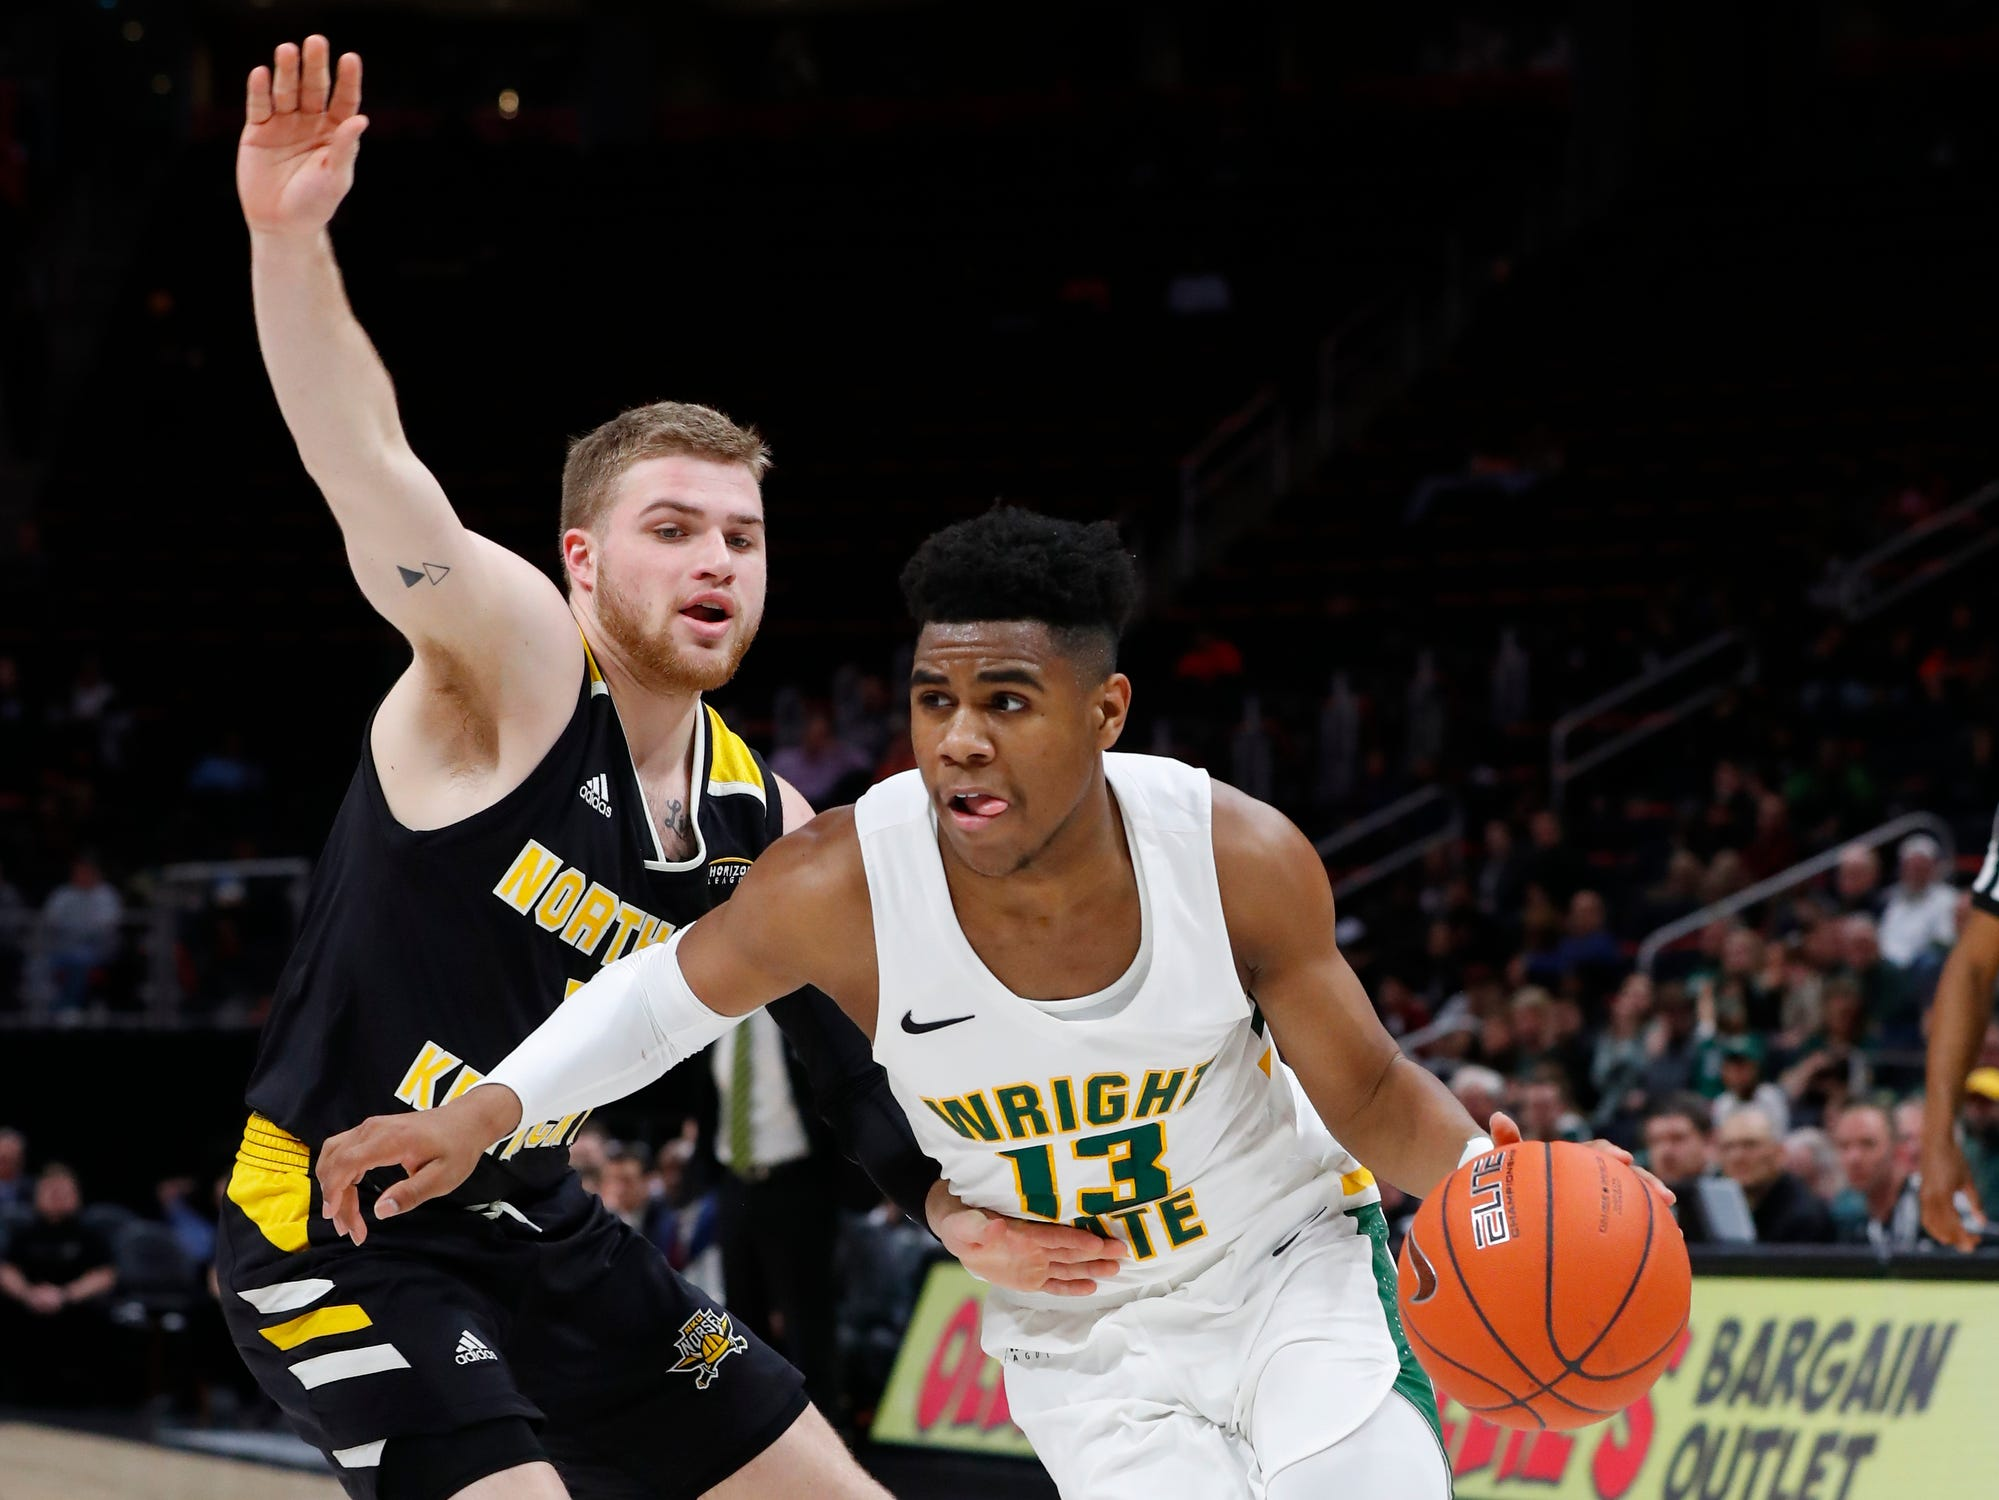 Wright State guard Malachi Smith (13) drives on Northern Kentucky guard Tyler Sharpe (15) in the first half of an NCAA men's basketball game in the Horizon League conference tournament championship in Detroit, Tuesday, March 12, 2019.